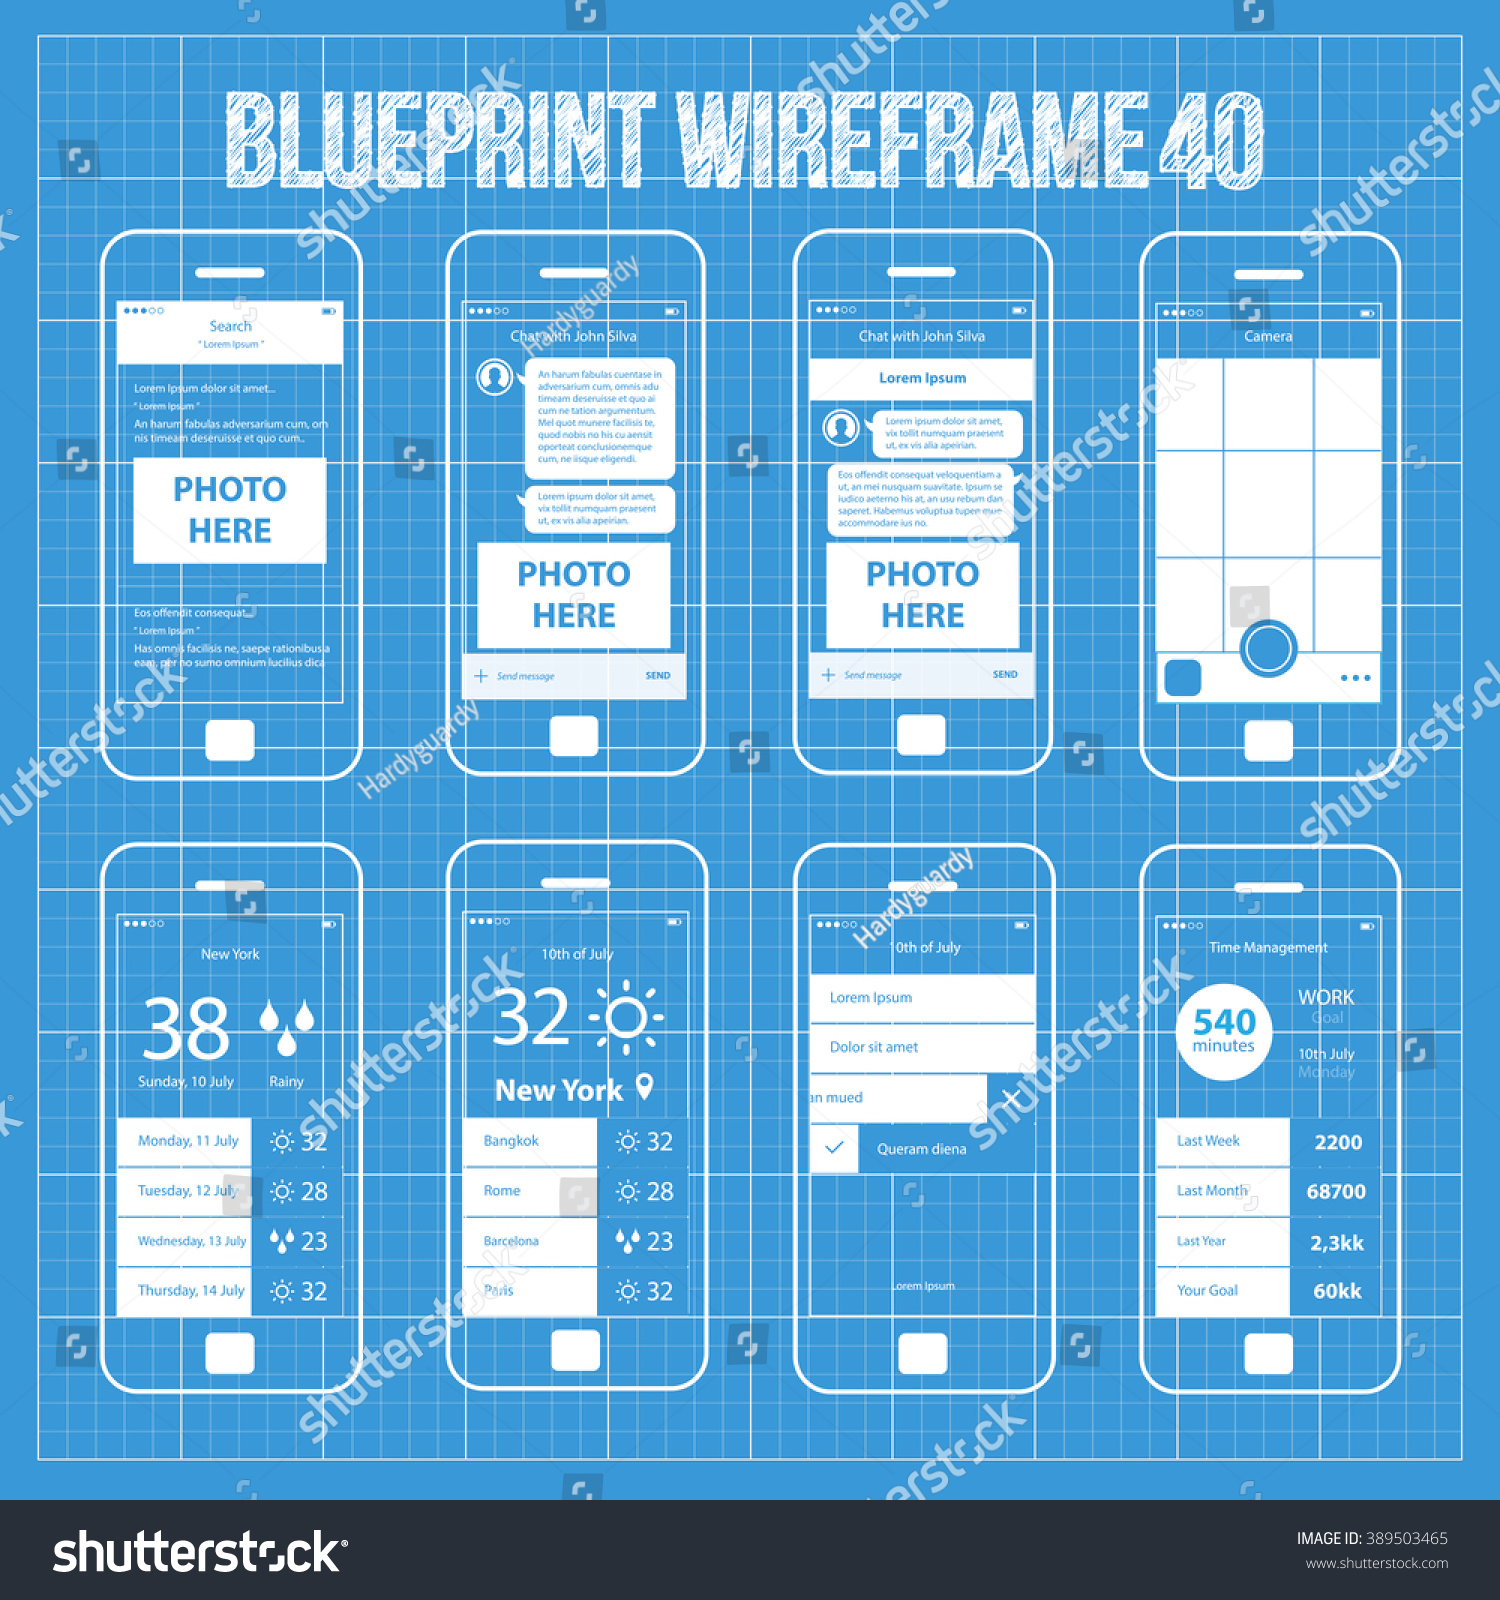 Royalty free mobile wireframe app ui kit 40 search 389503465 mobile wireframe app ui kit 40 search results screen chat with friend screen camera screen weather world cities screen day planner screen malvernweather Choice Image